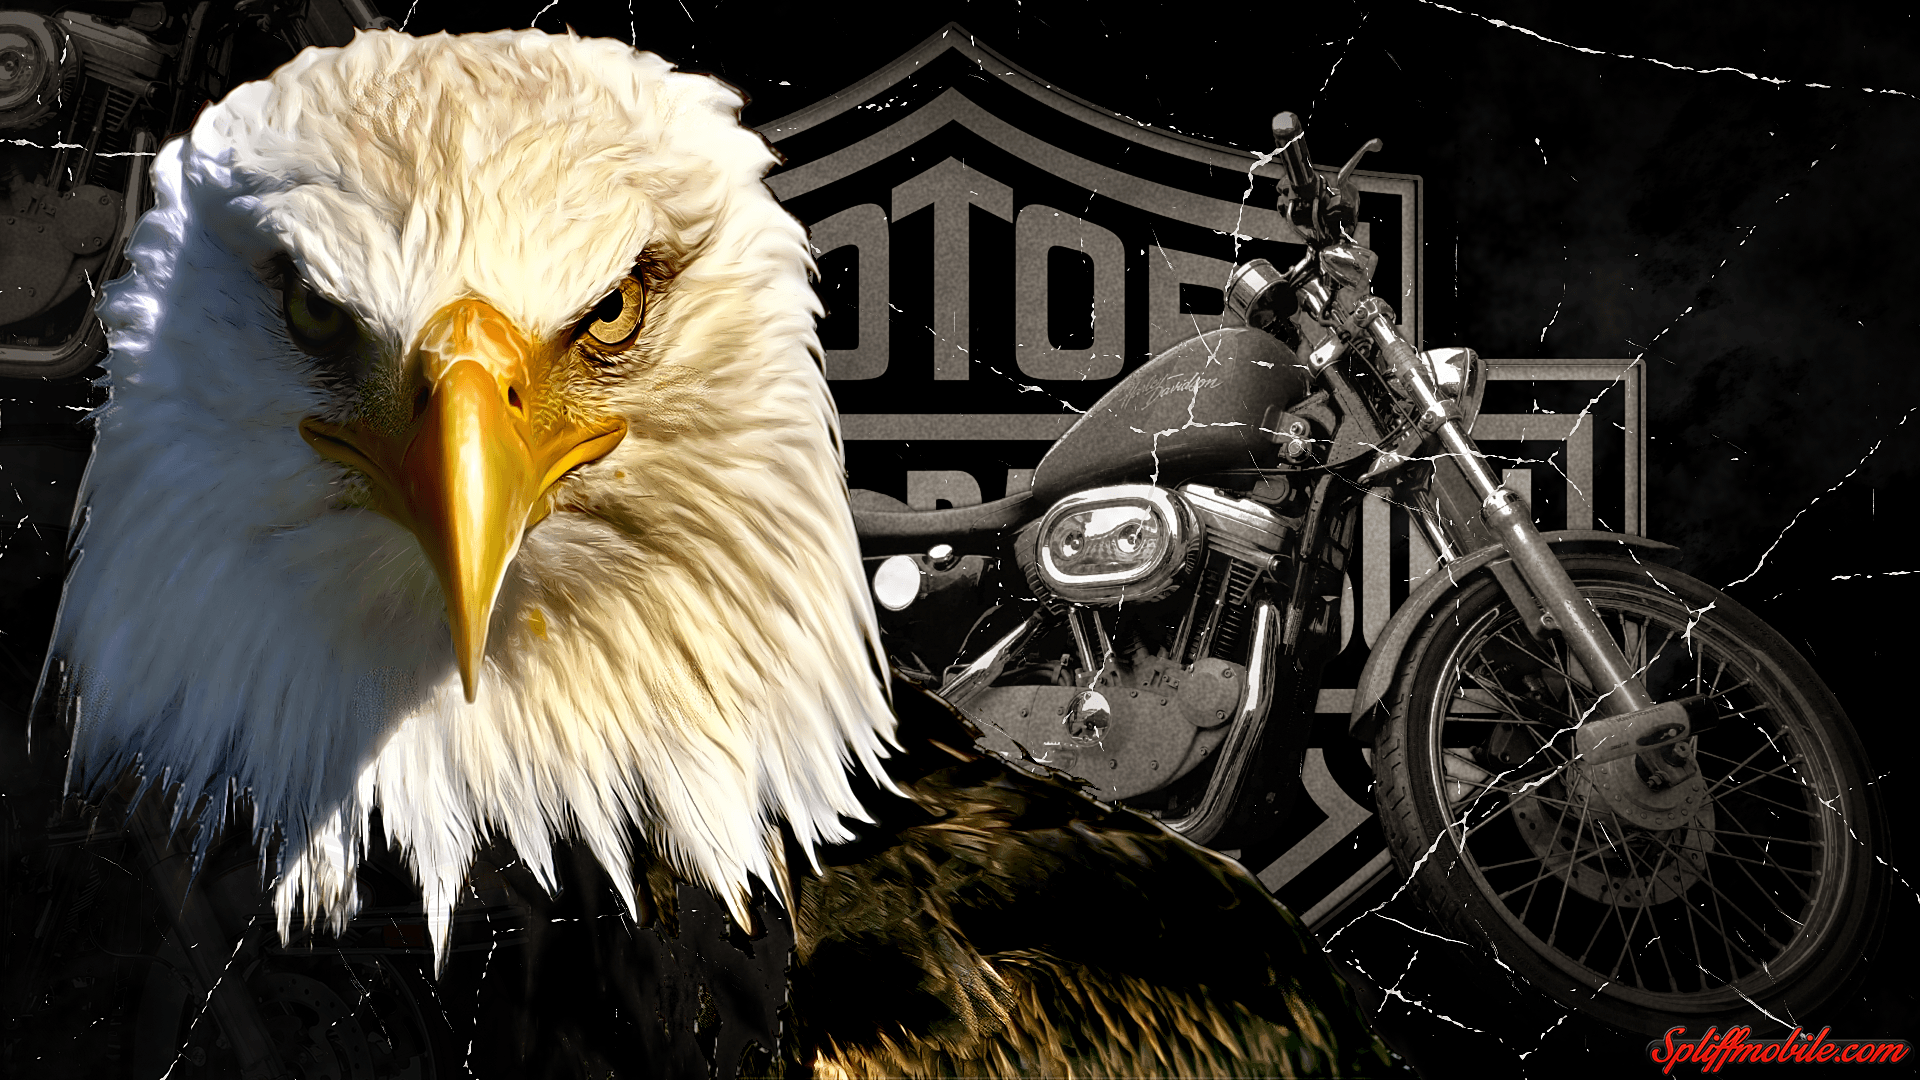 Harley davidson wallpapers wallpaper cave hd harley davidson wallpaper voltagebd Images